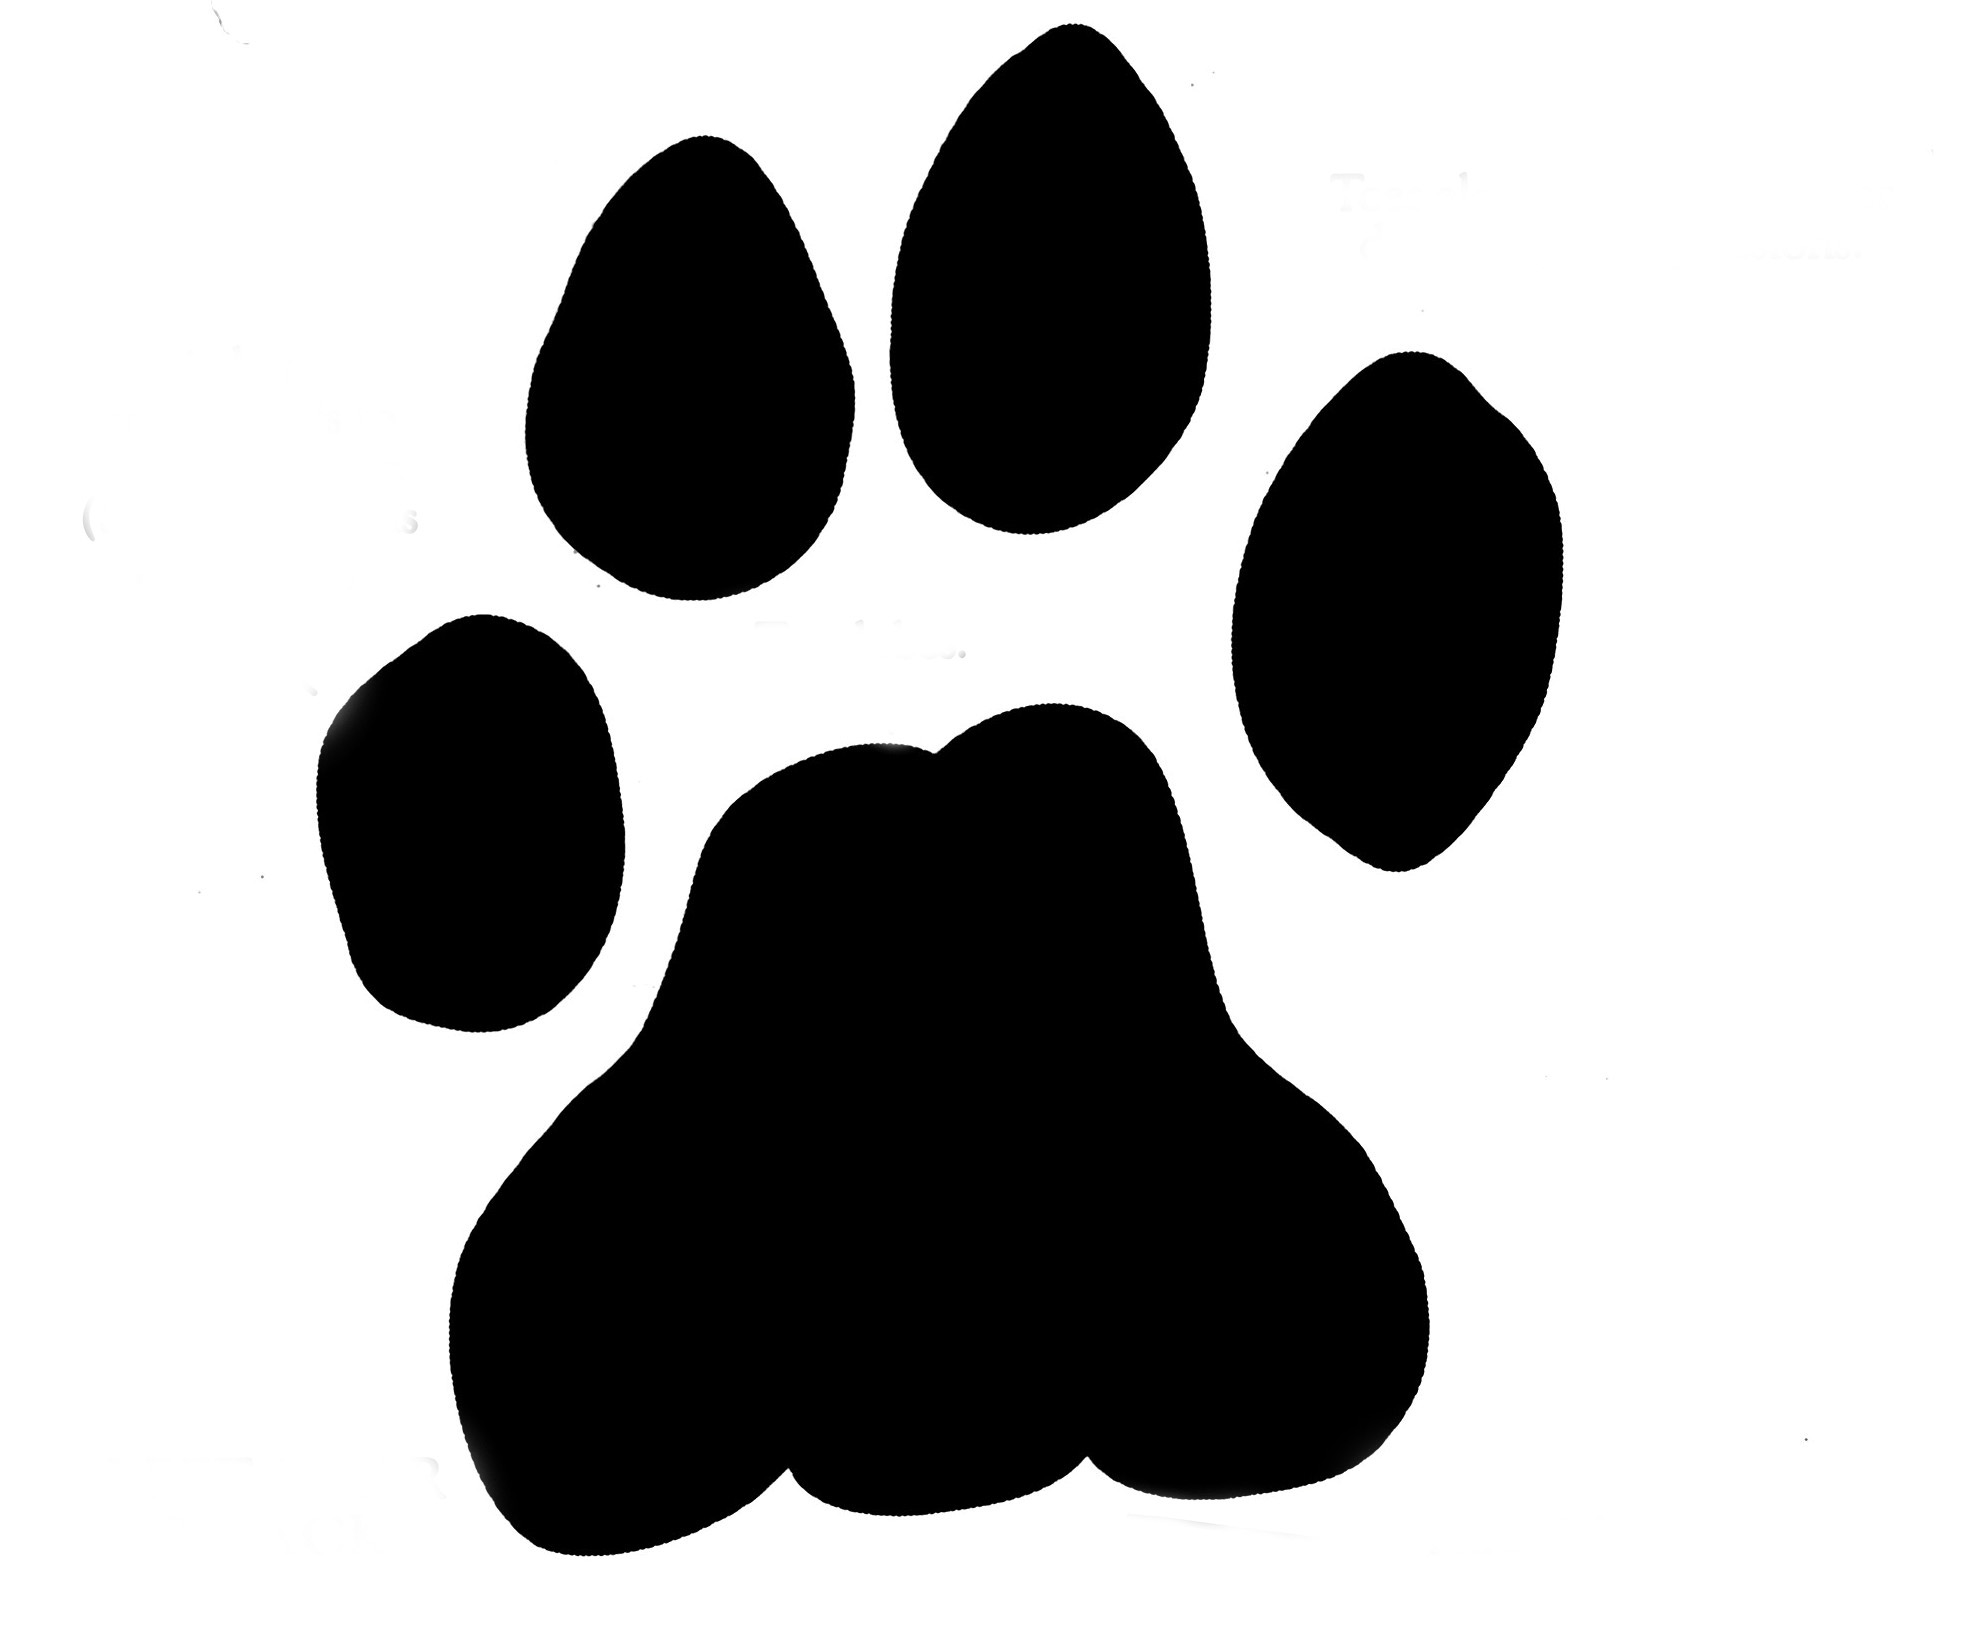 27 Lion Paw Prints Free Cliparts That You Can Download To You Computer